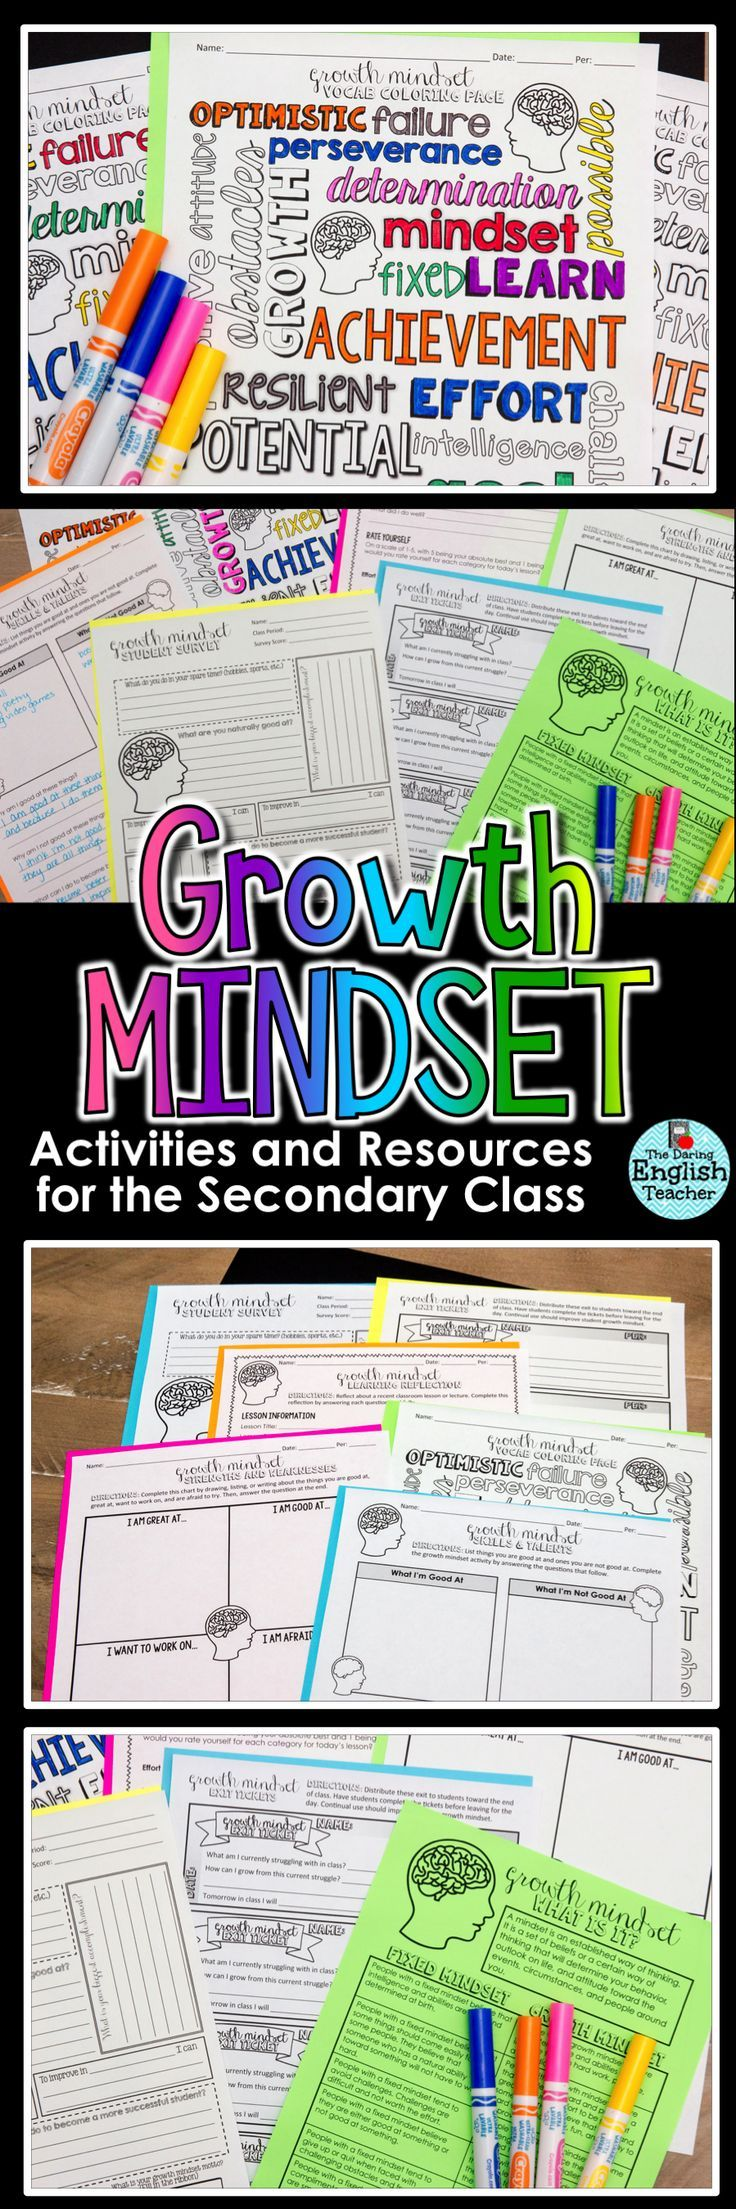 Incorporate growth mindset teaching resources, activities, and strategies into your middle school or high school classroom with this Growth Mindset Learning Pack.